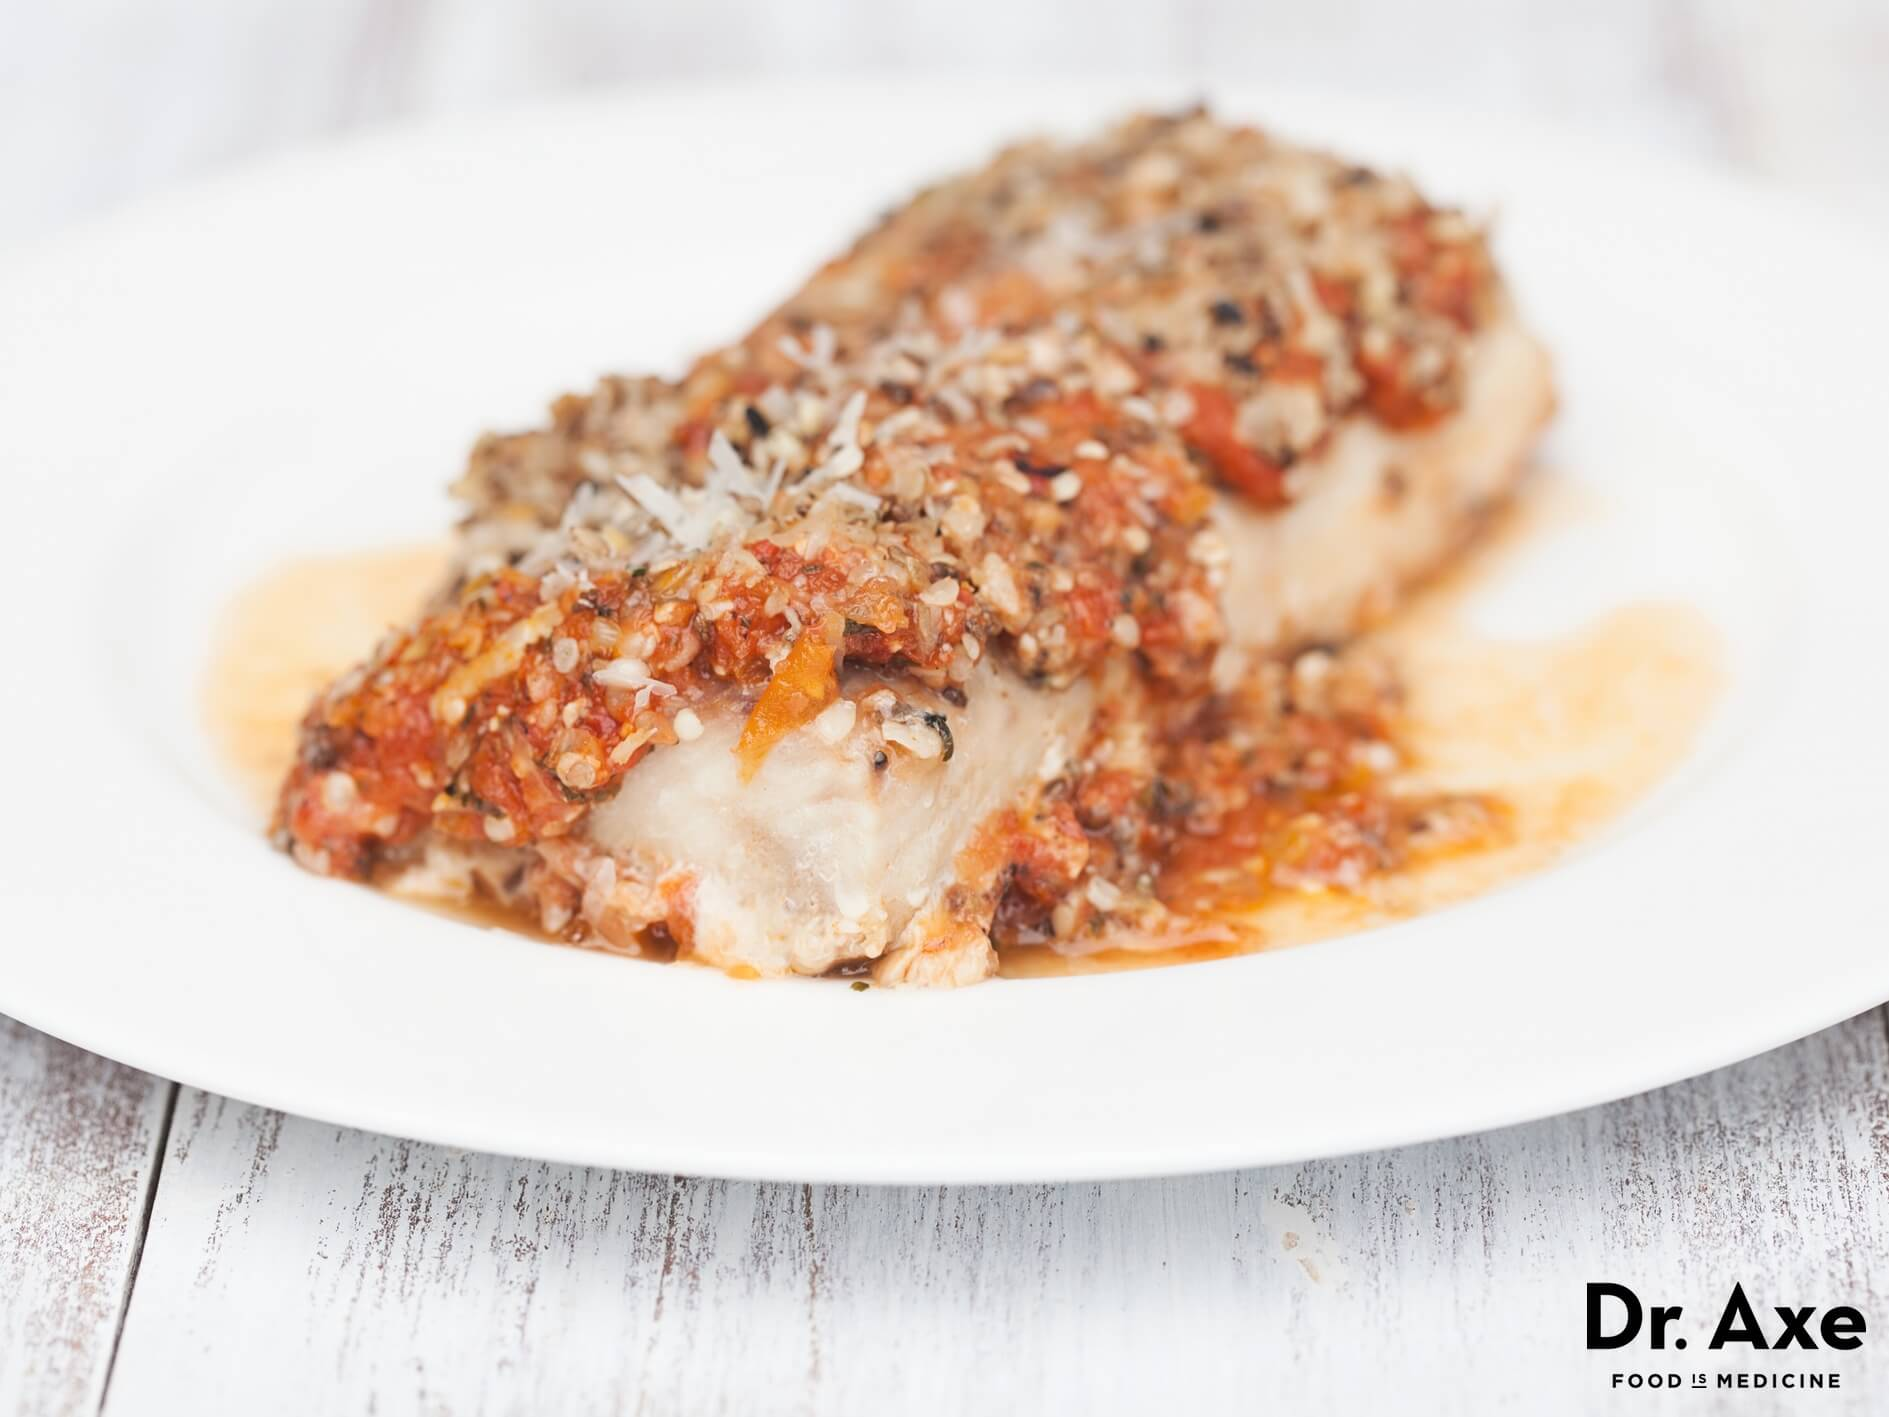 baked savory fish recipe